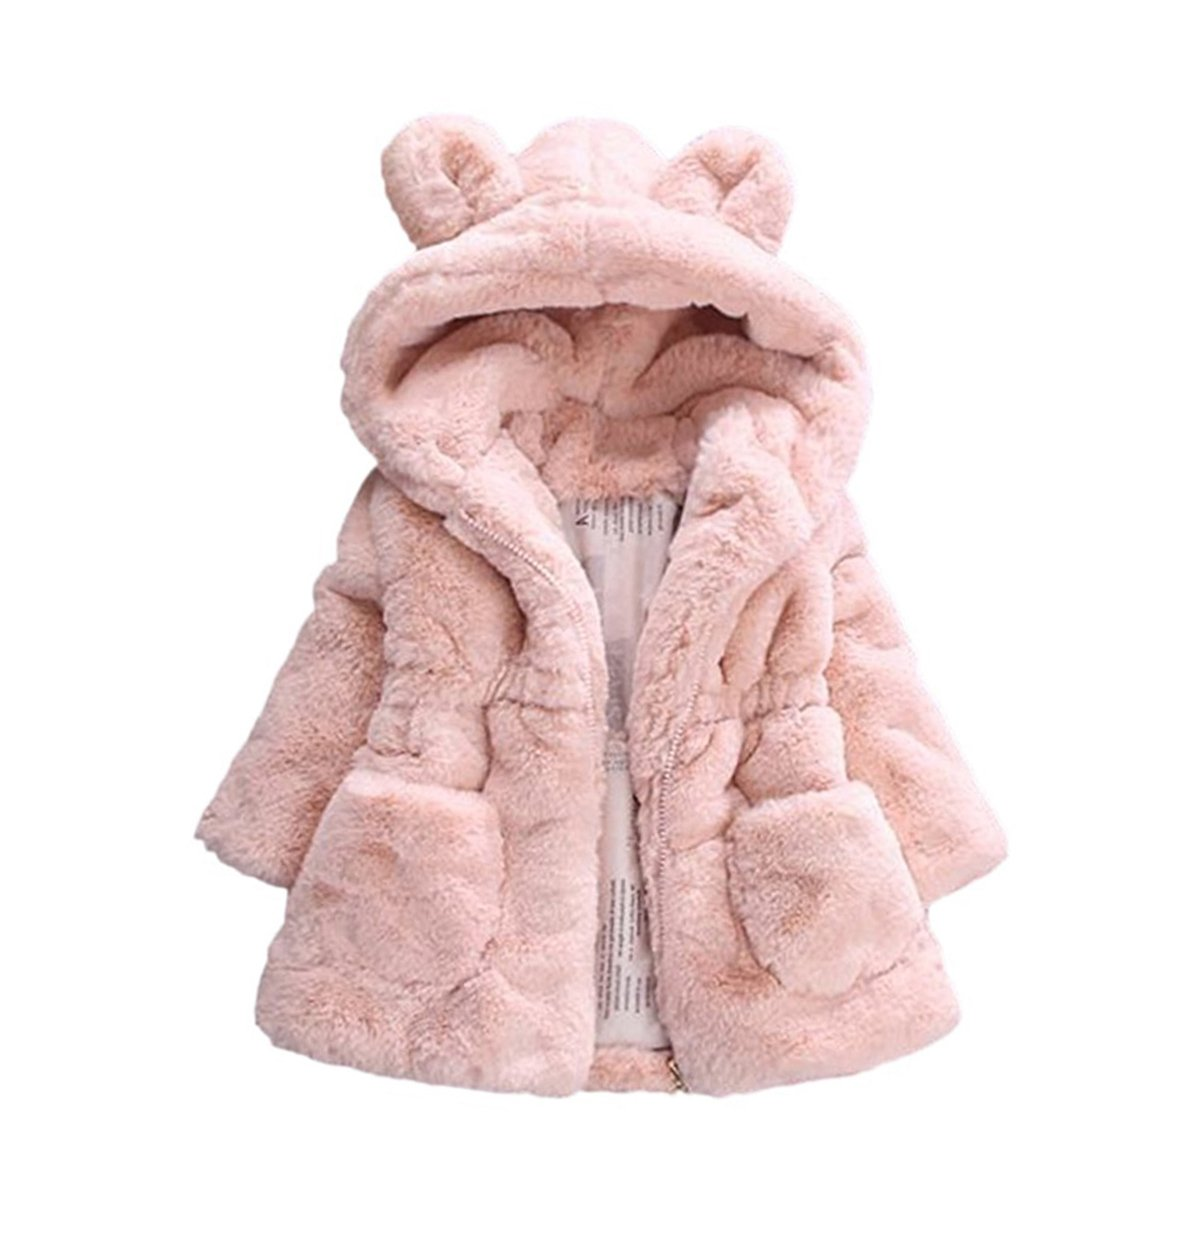 TAIYCYXGAN Baby Little Girls Winter Fleece Coat Kids Faux Fur Jacket with Hood Thicken Outwear Warm Overcoat Pink 120 by TAIYCYXGAN